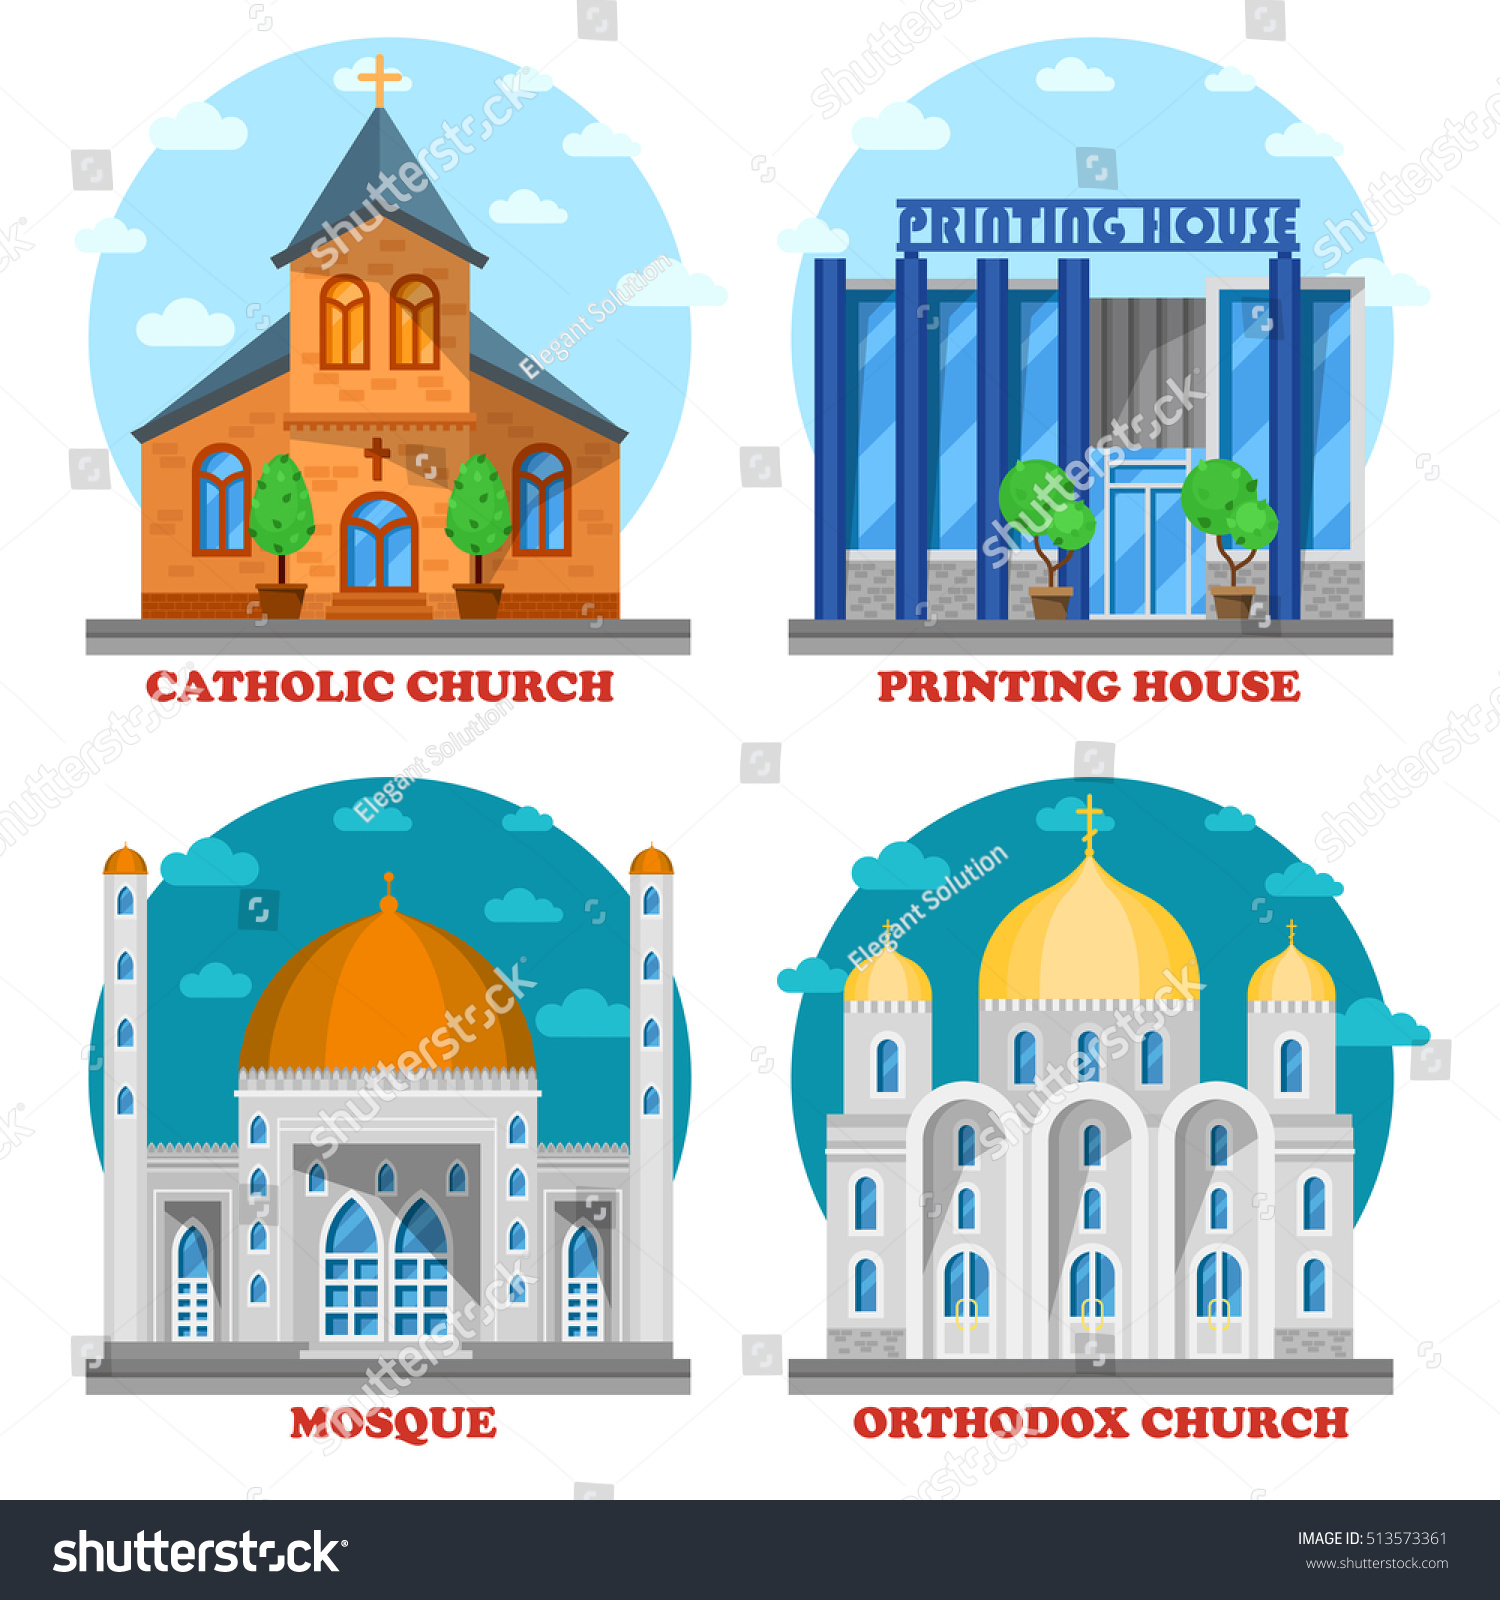 Set of church buildings and printing house facade Muslim mosque for islam ramadan and christian building with cross architecture Islam temple icon or orthodox and catholic God worship faith theme